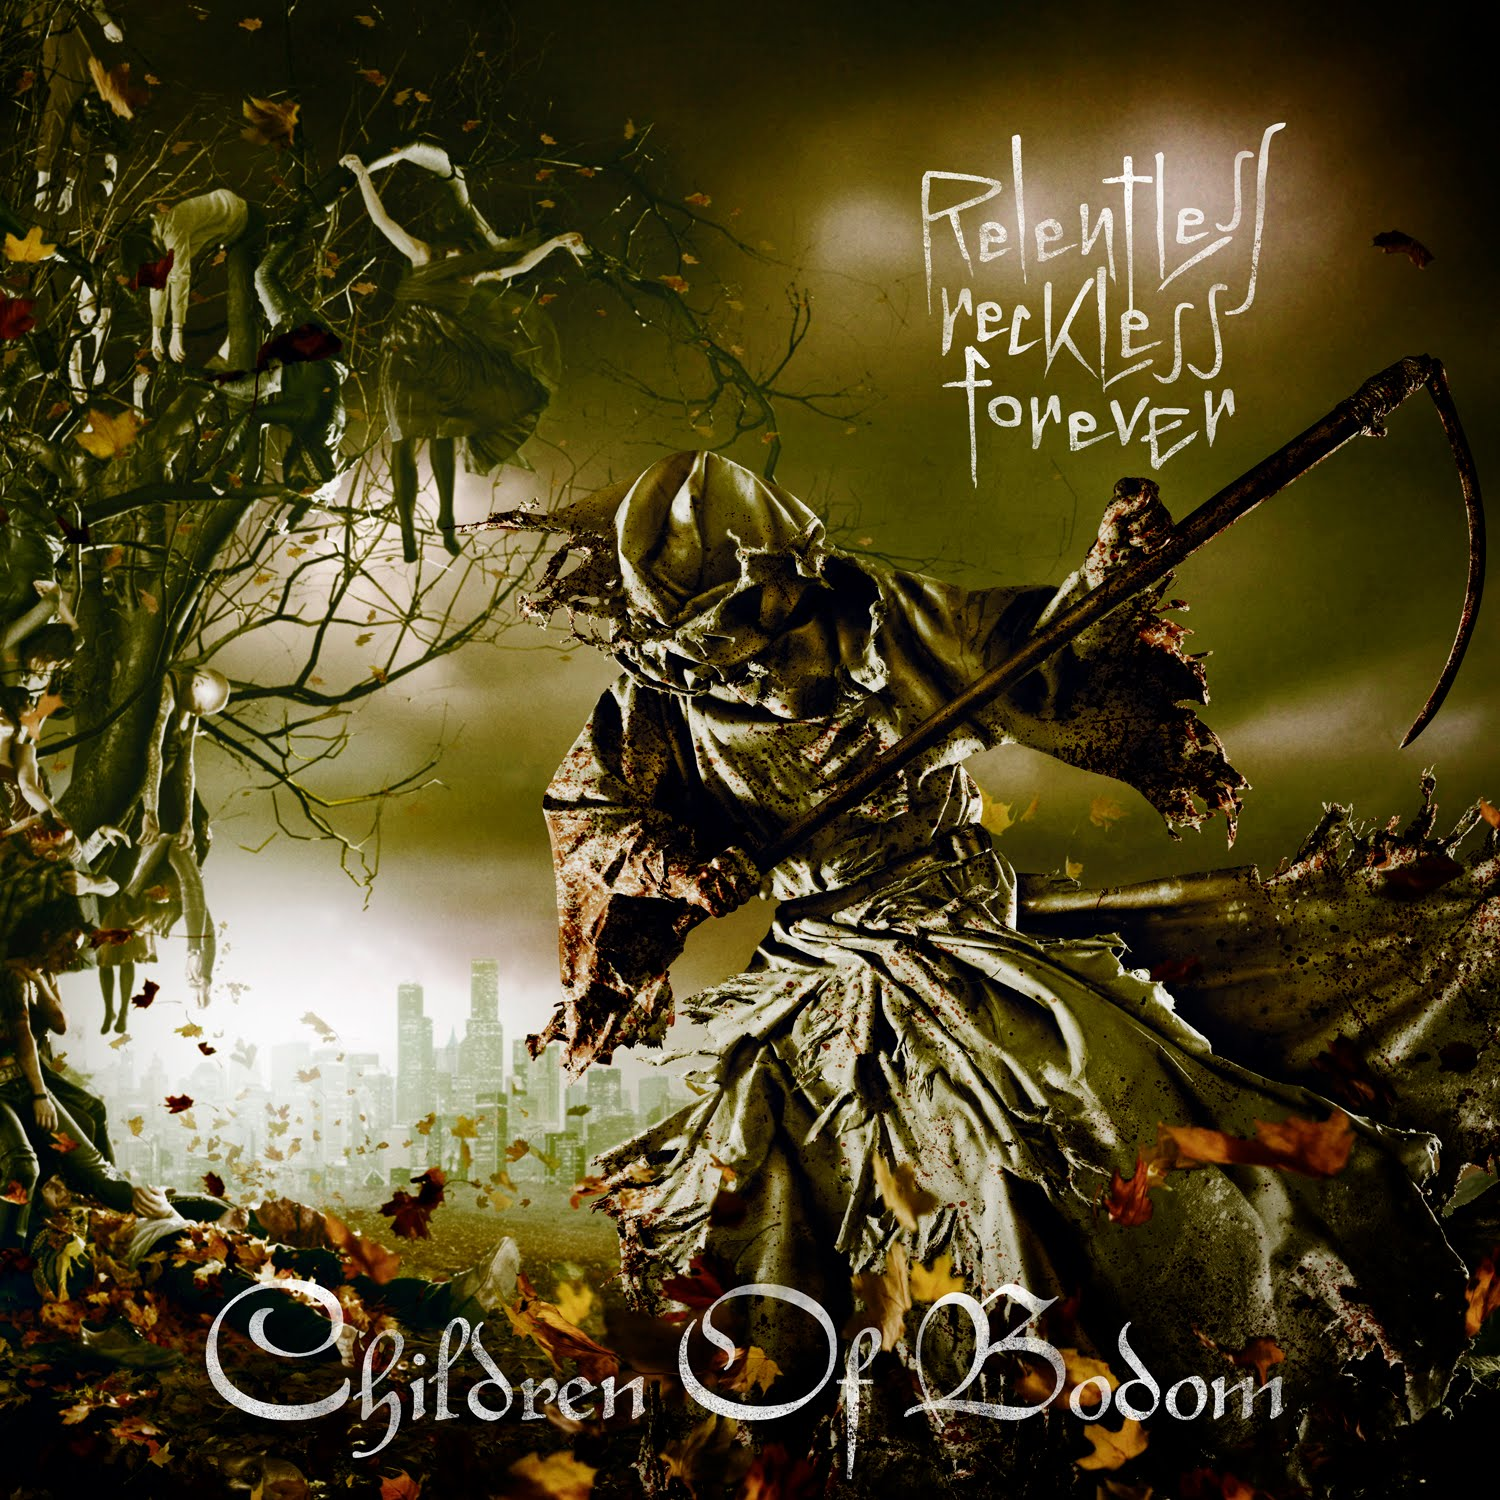 Children of Bodom – Relentless Reckless Forever Review